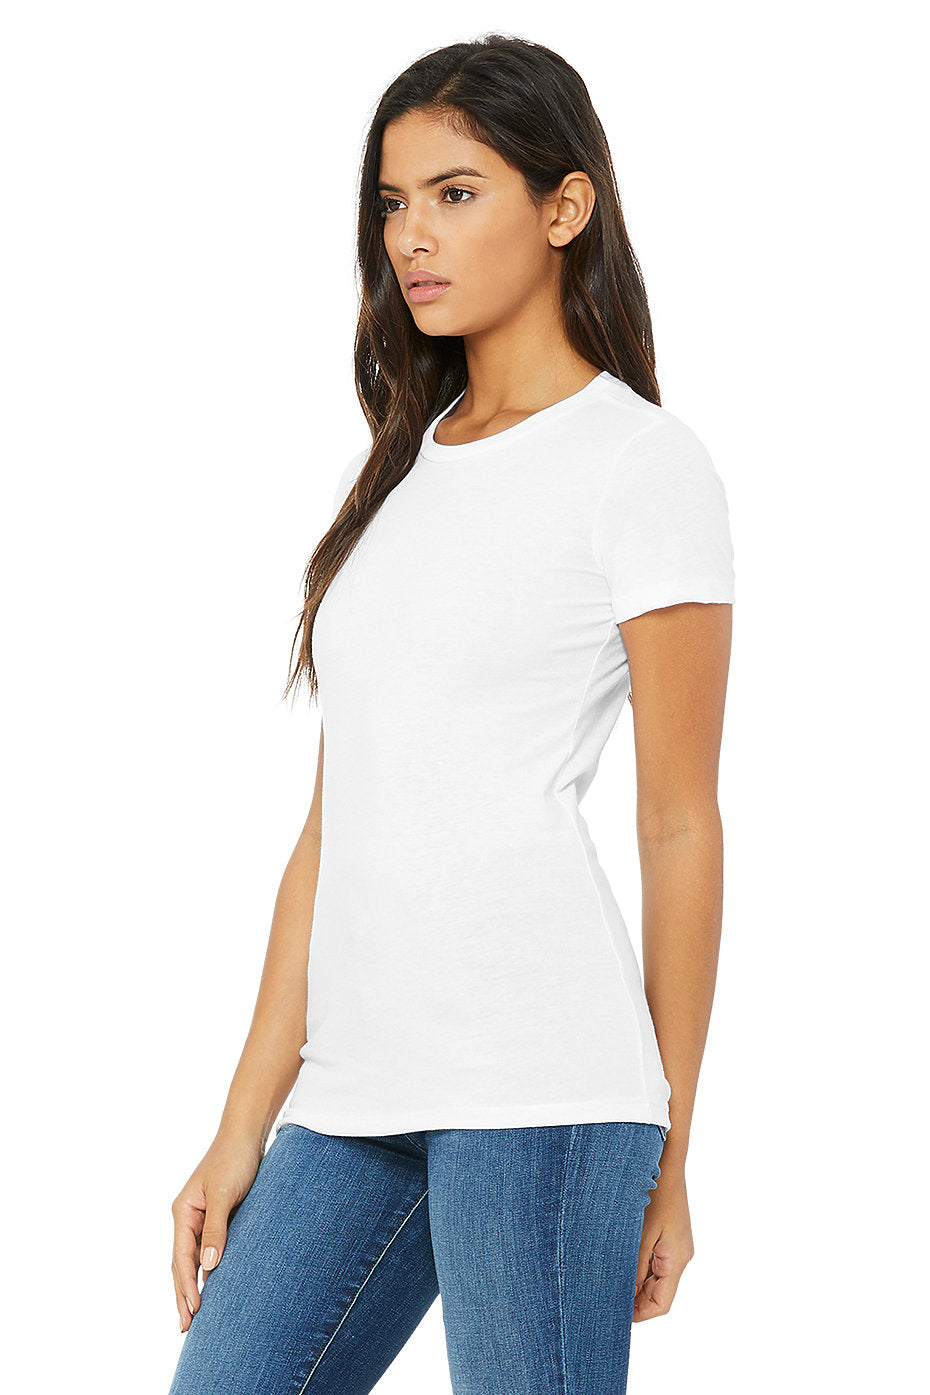 WOMENS 100% Cotton S/S Tee - White